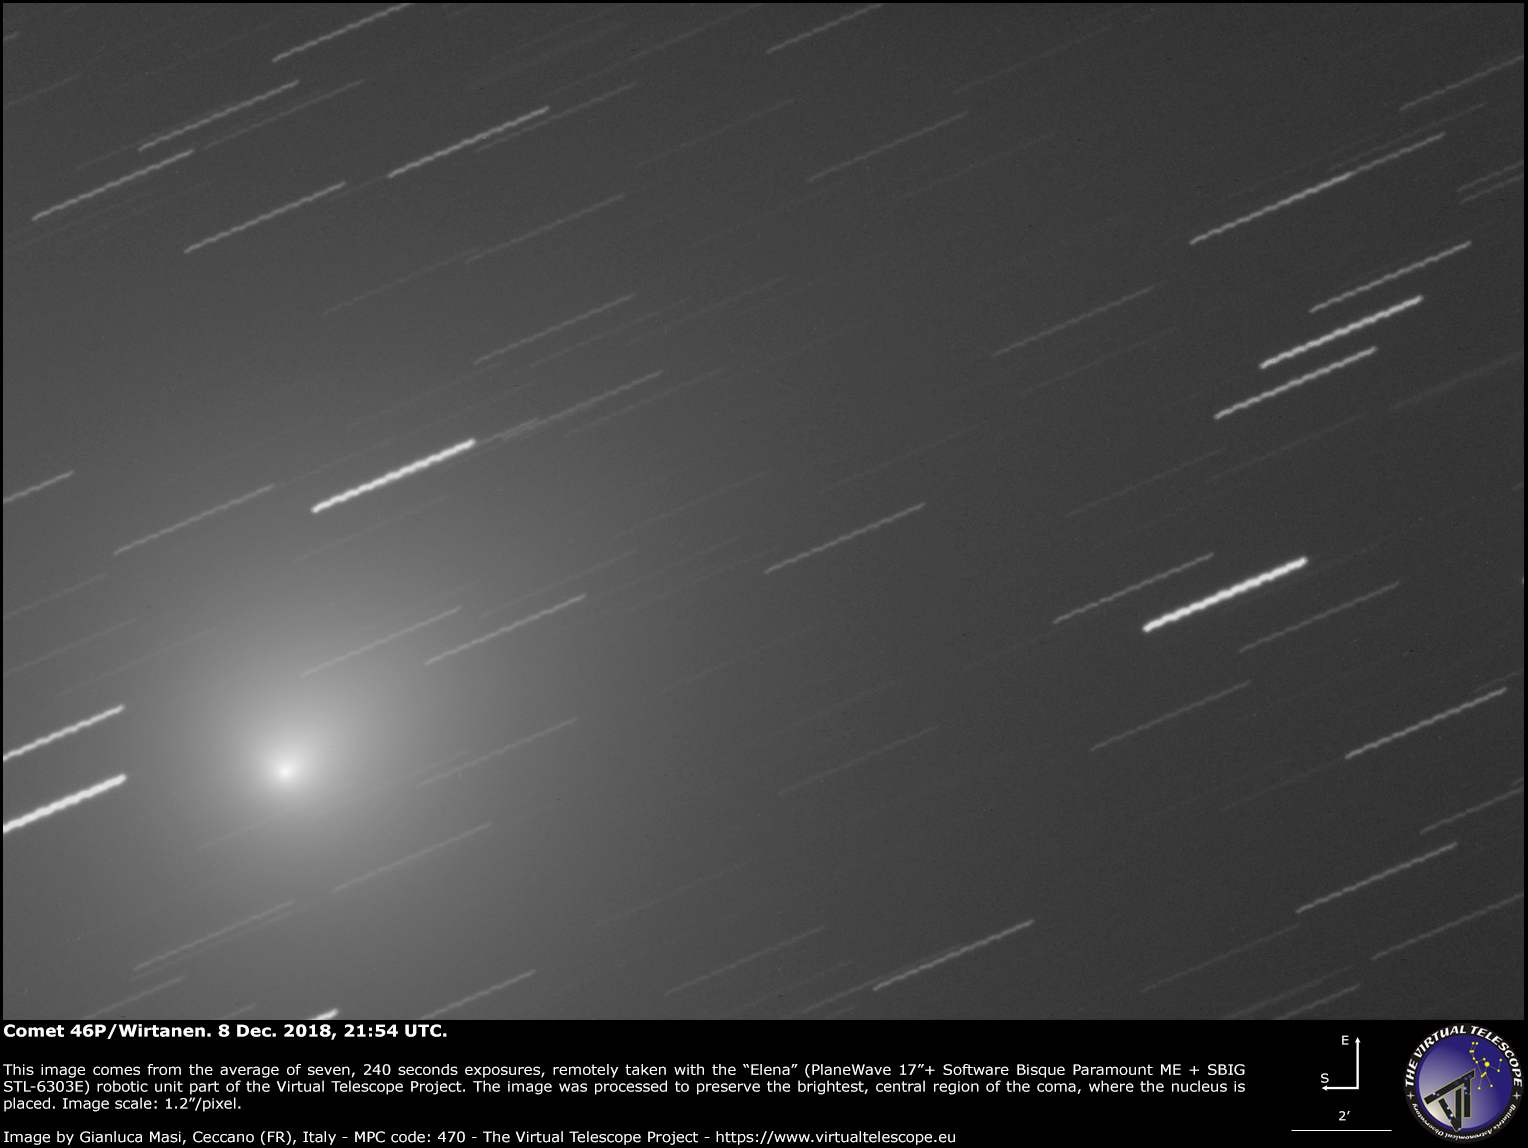 Comet 46p Wirtanen Show A New Image 8 Dec 2018 The